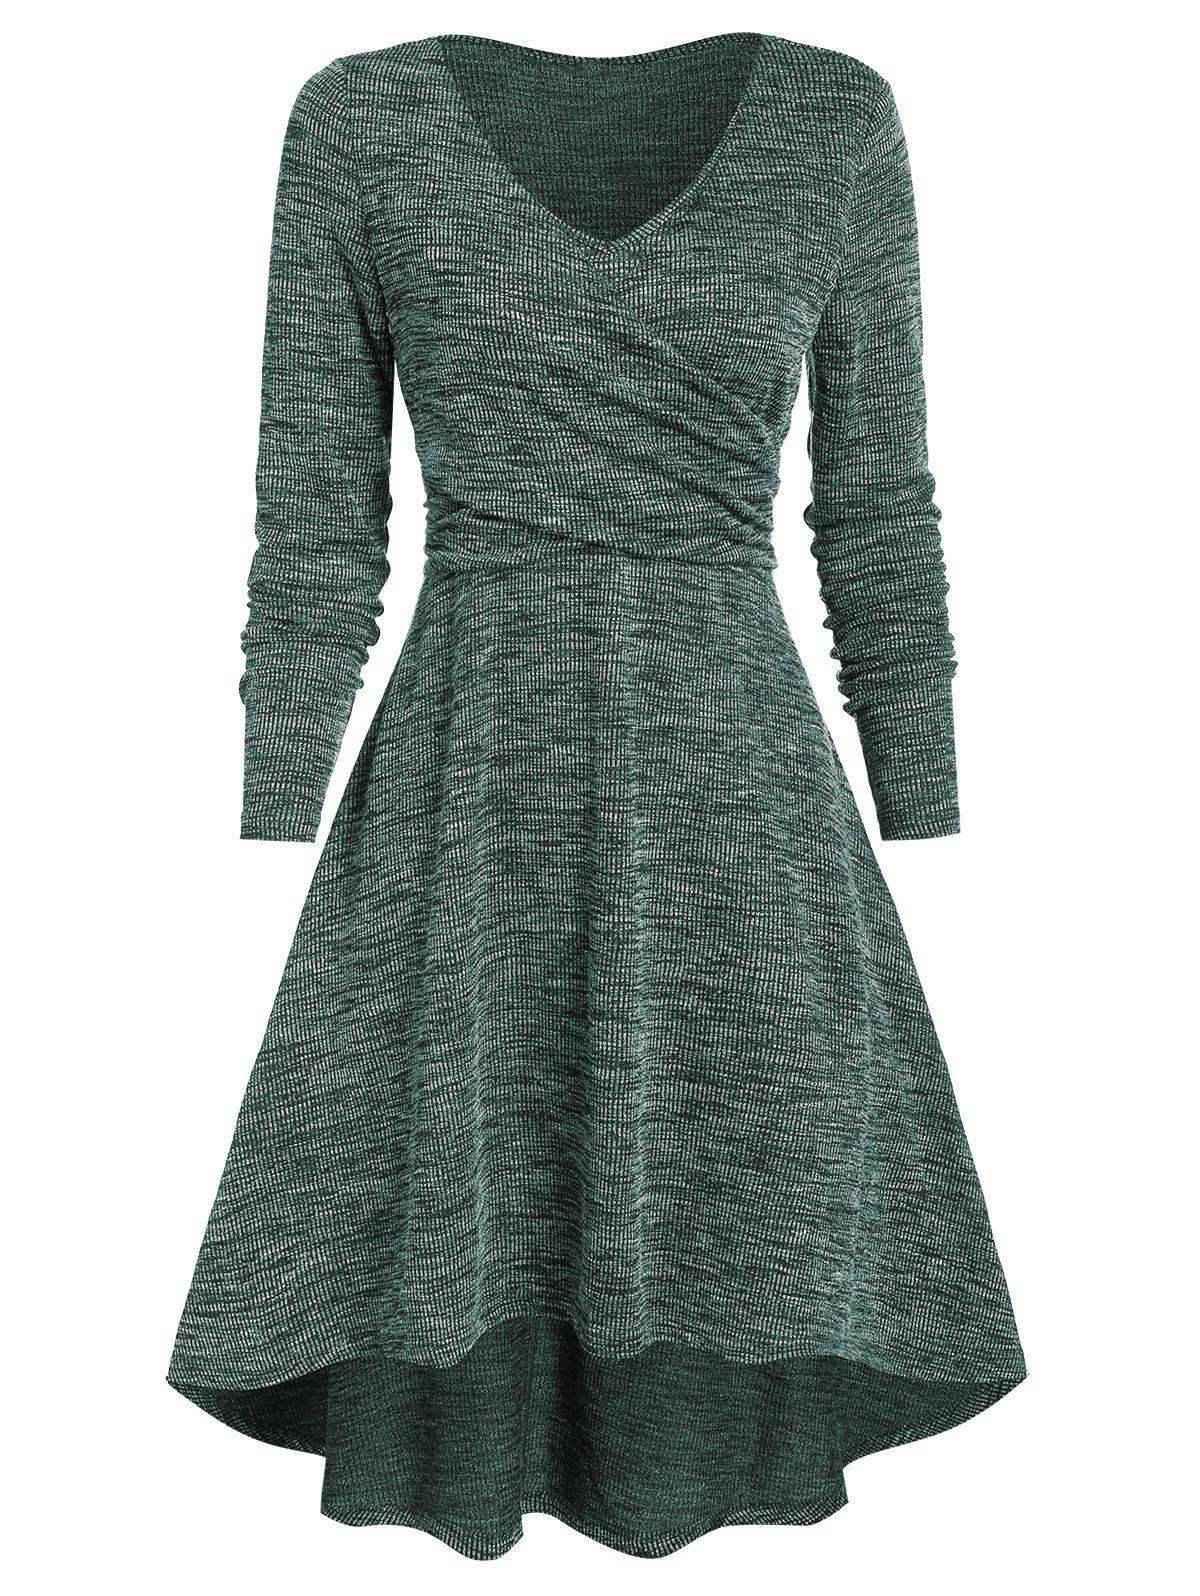 V Neck Heathered Crossover High Low Dress - MEDIUM FOREST GREEN S